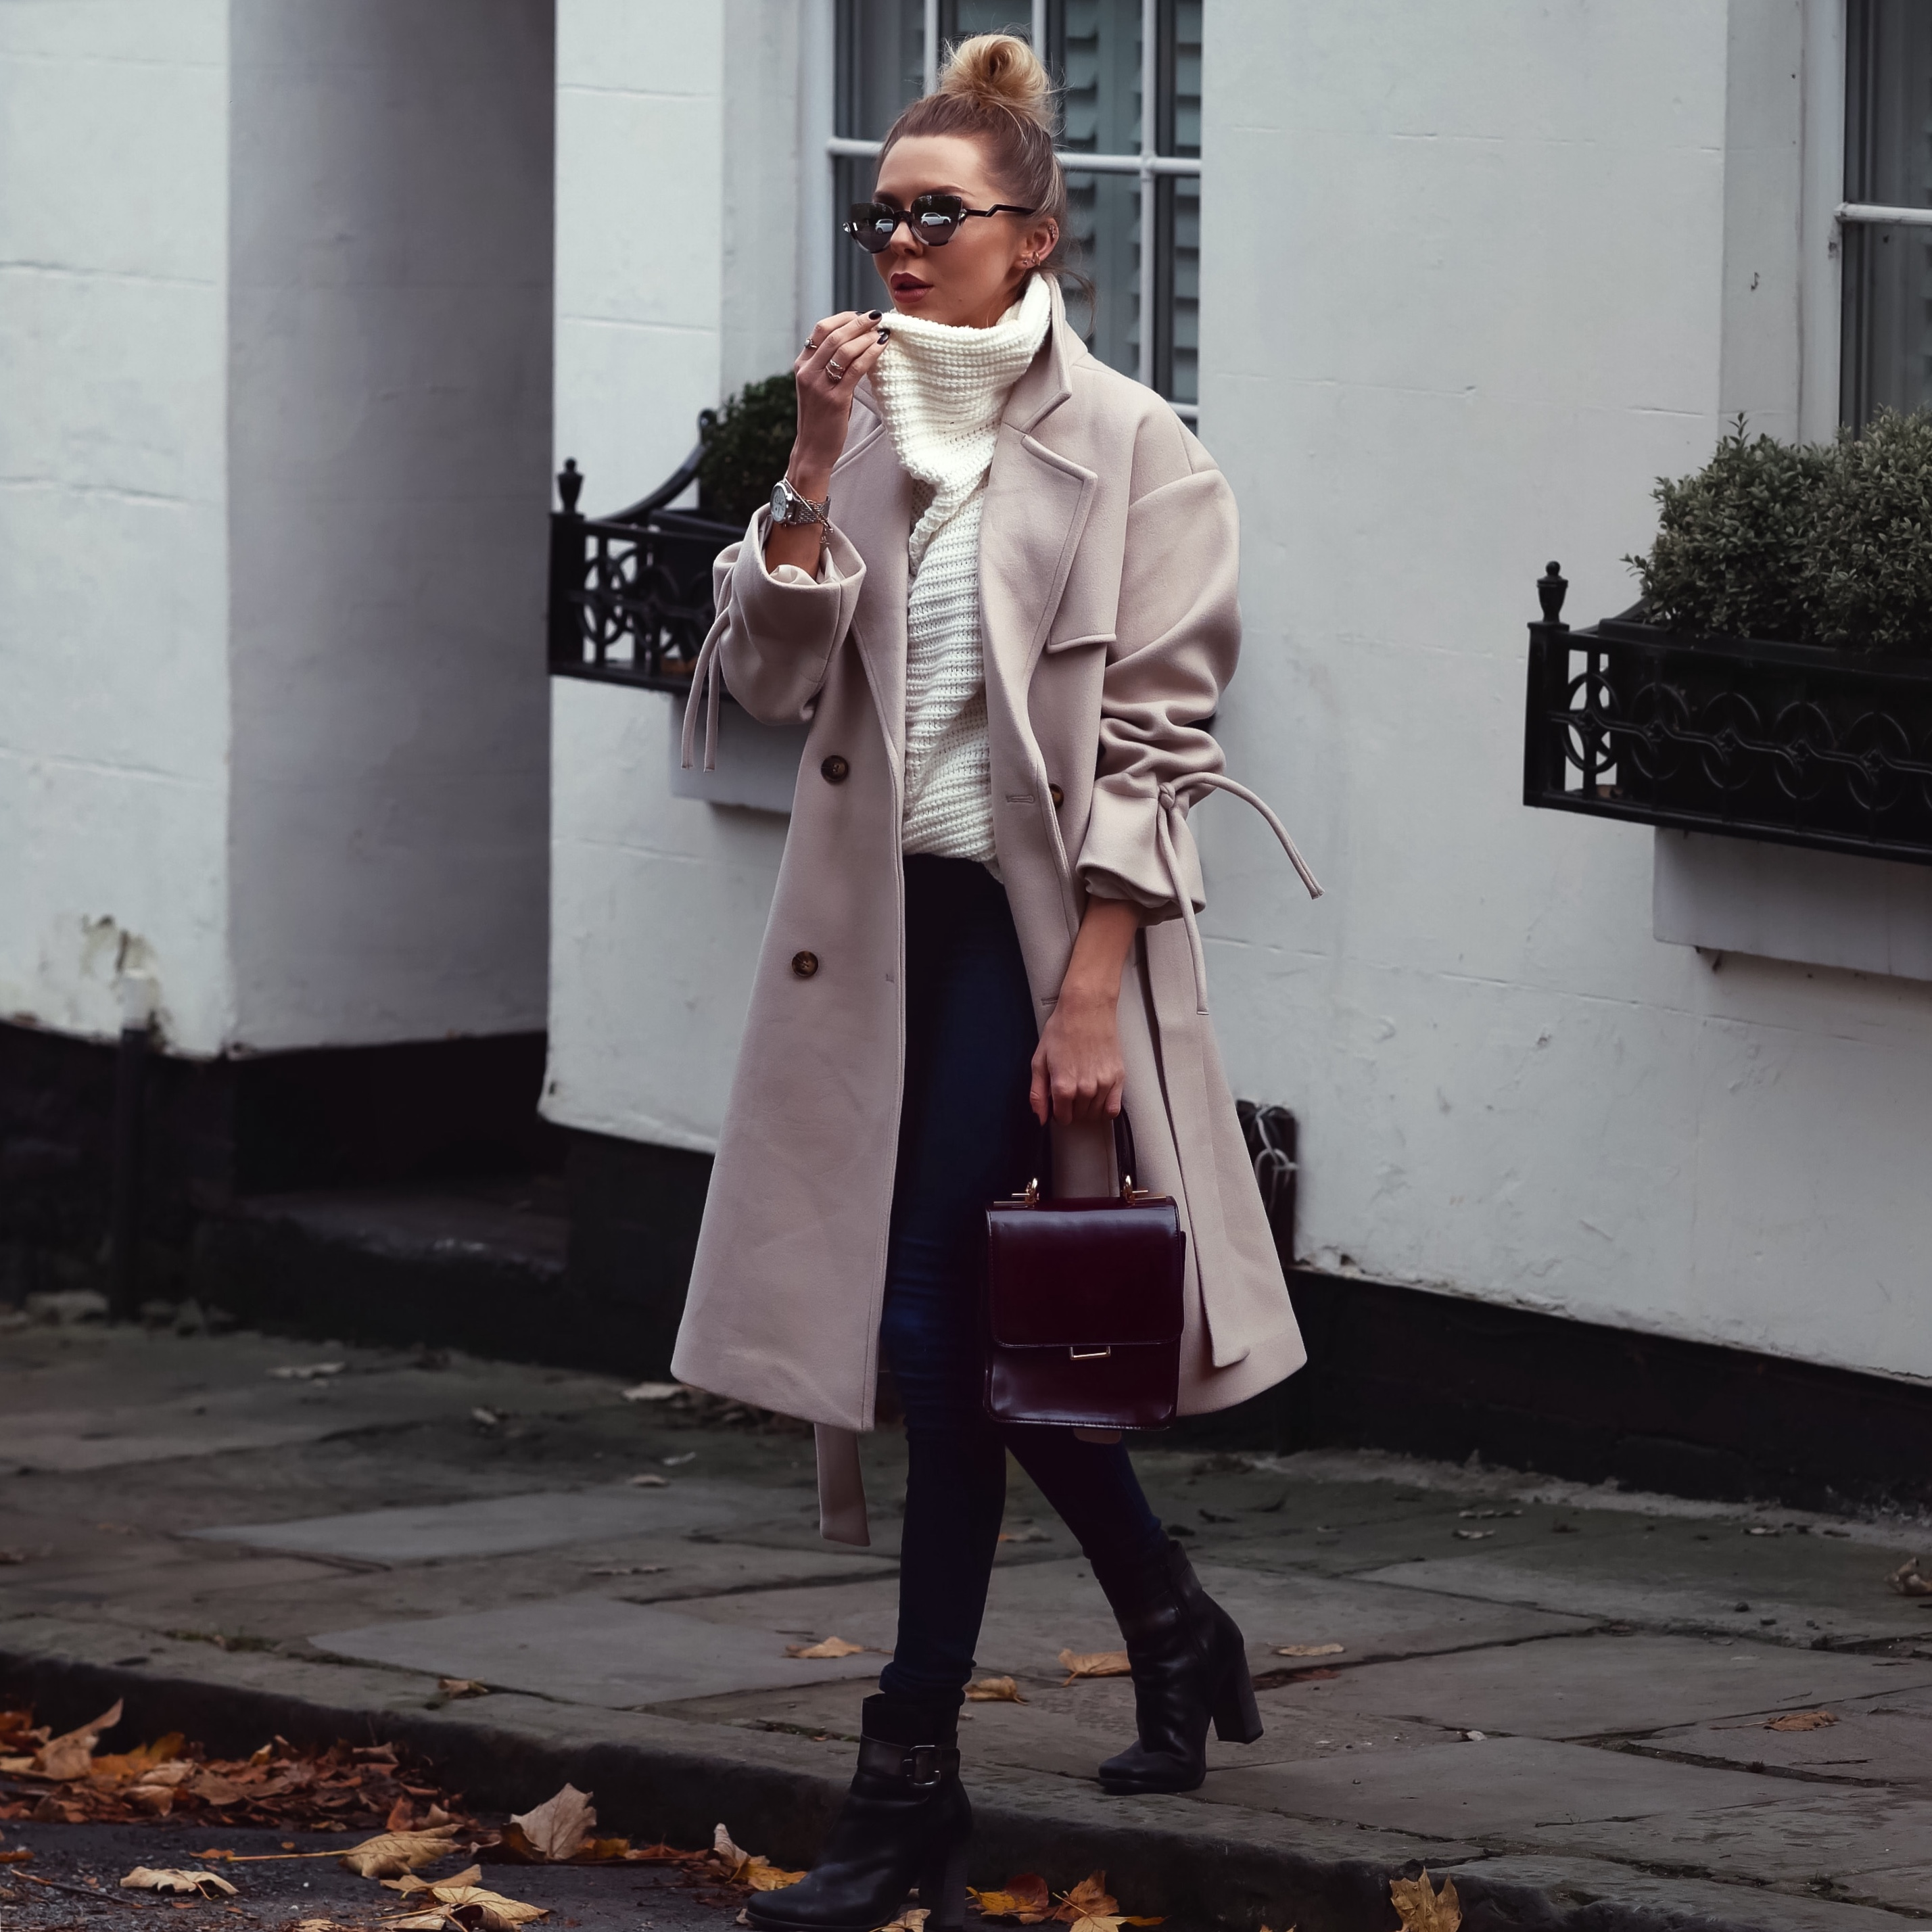 OVERSIZED COATS, AUTUMMN FASHION, WINTER COATS WOMEN, FALL FASHION, CHI CHI LONDON, LAURA BLAIR, LONDON FASHION GIRL